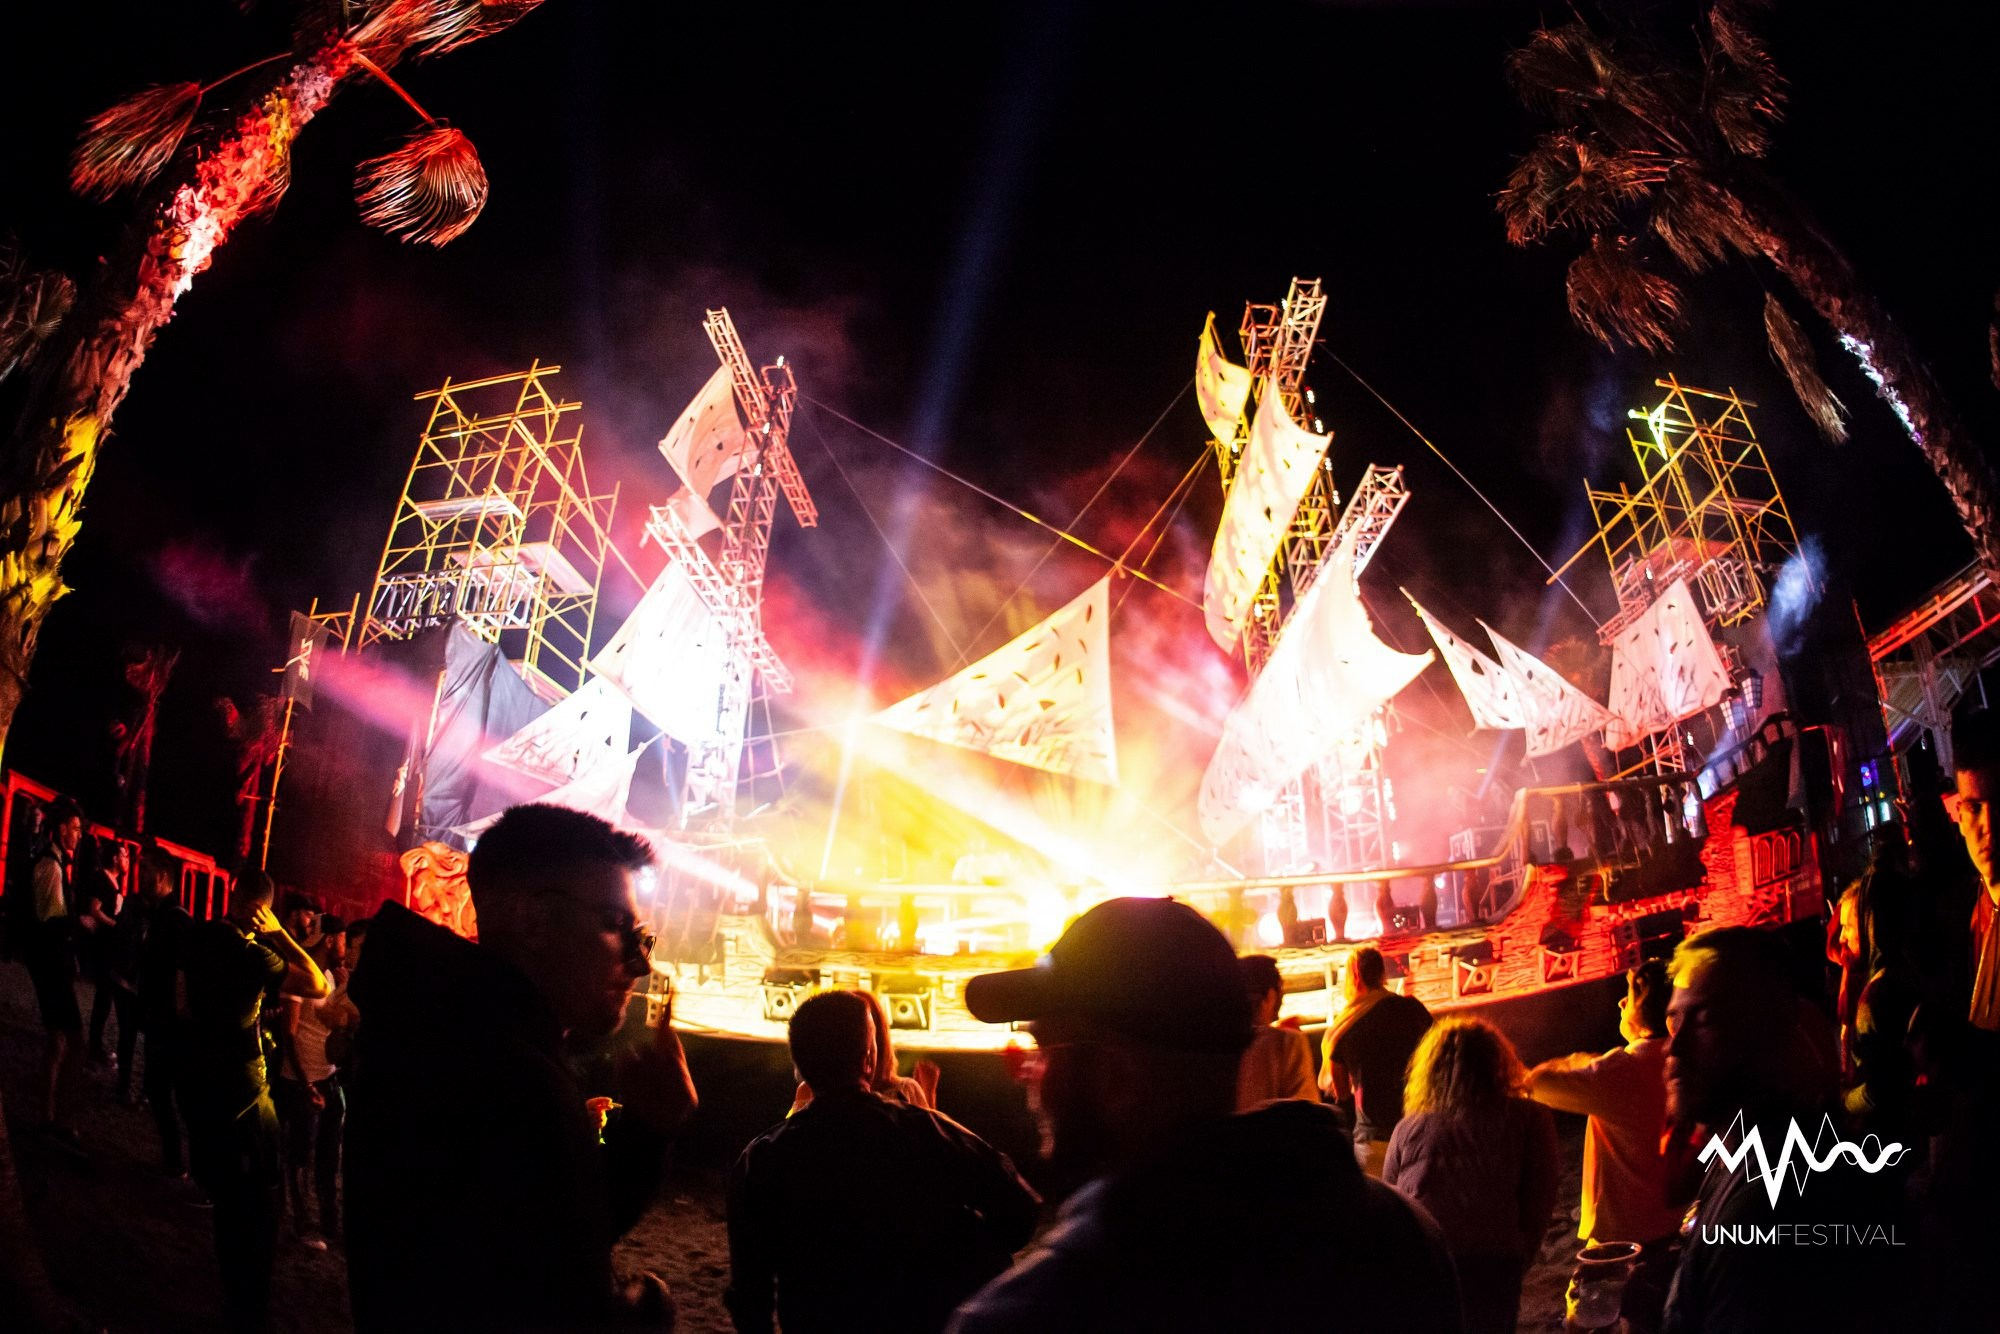 unum-first-festival-with-rapid-covid-testing